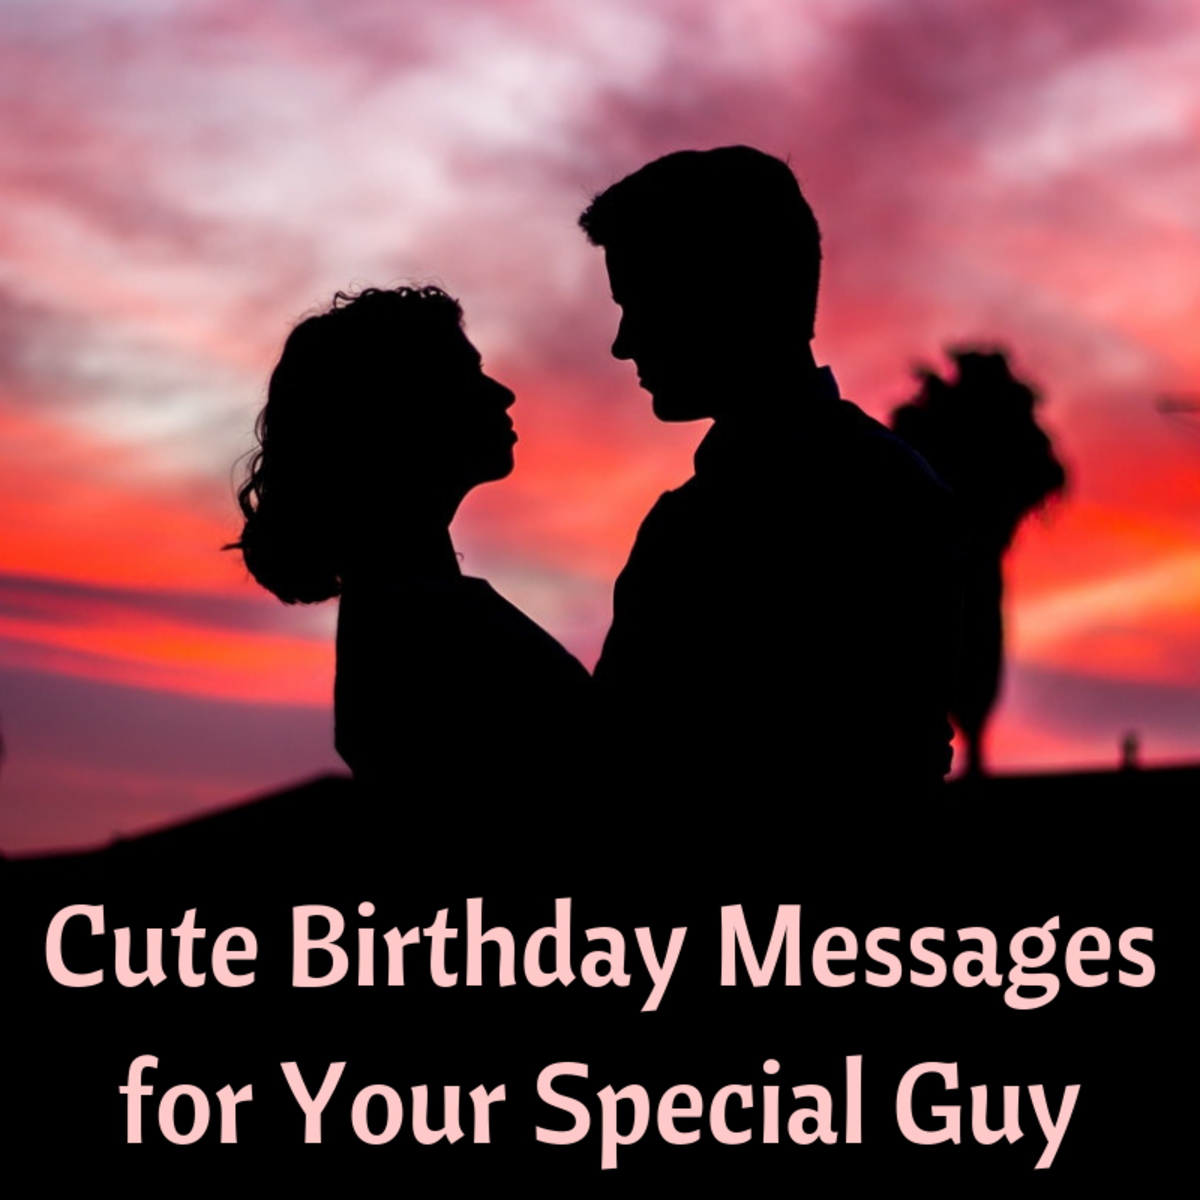 Cute Happy Birthday Quotes for Your Husband or Boyfriend